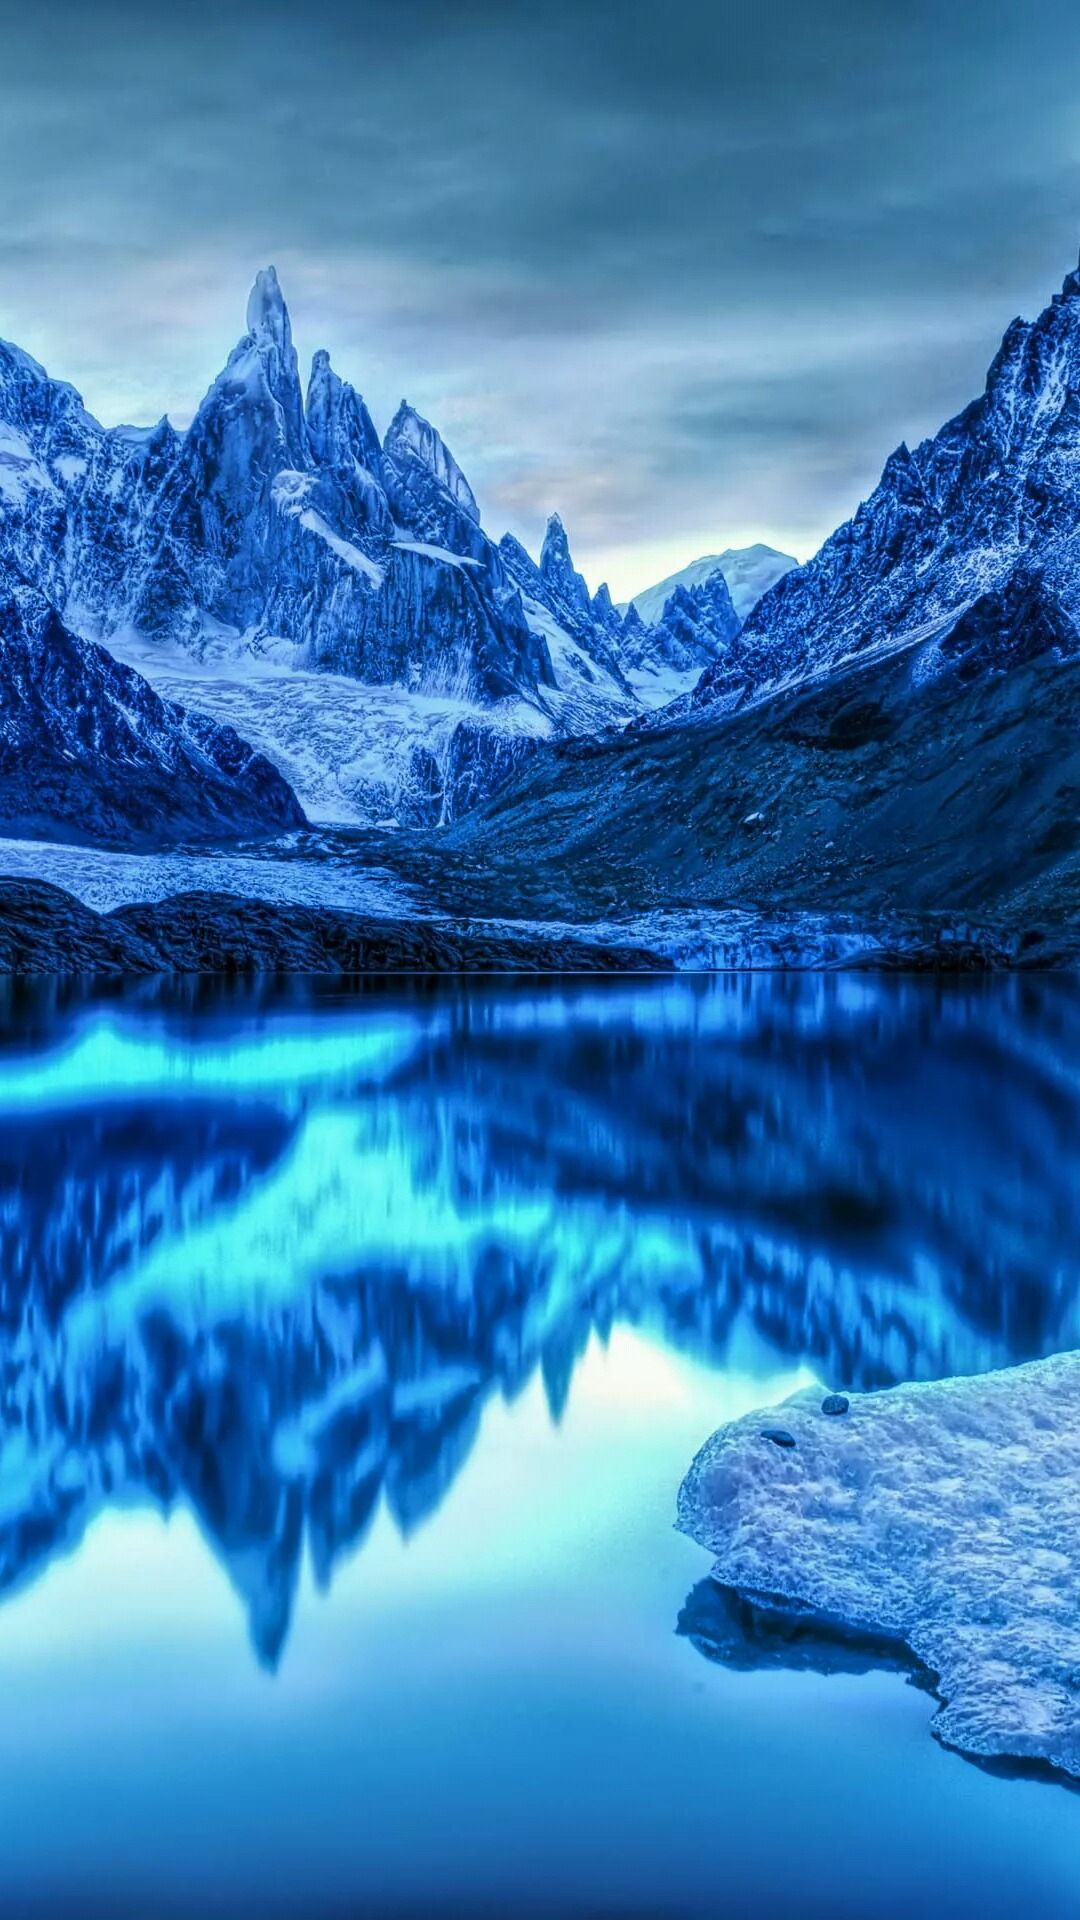 Download ice lake samsung galaxy j5 hd wallpapers winter - Free winter wallpaper for phone ...